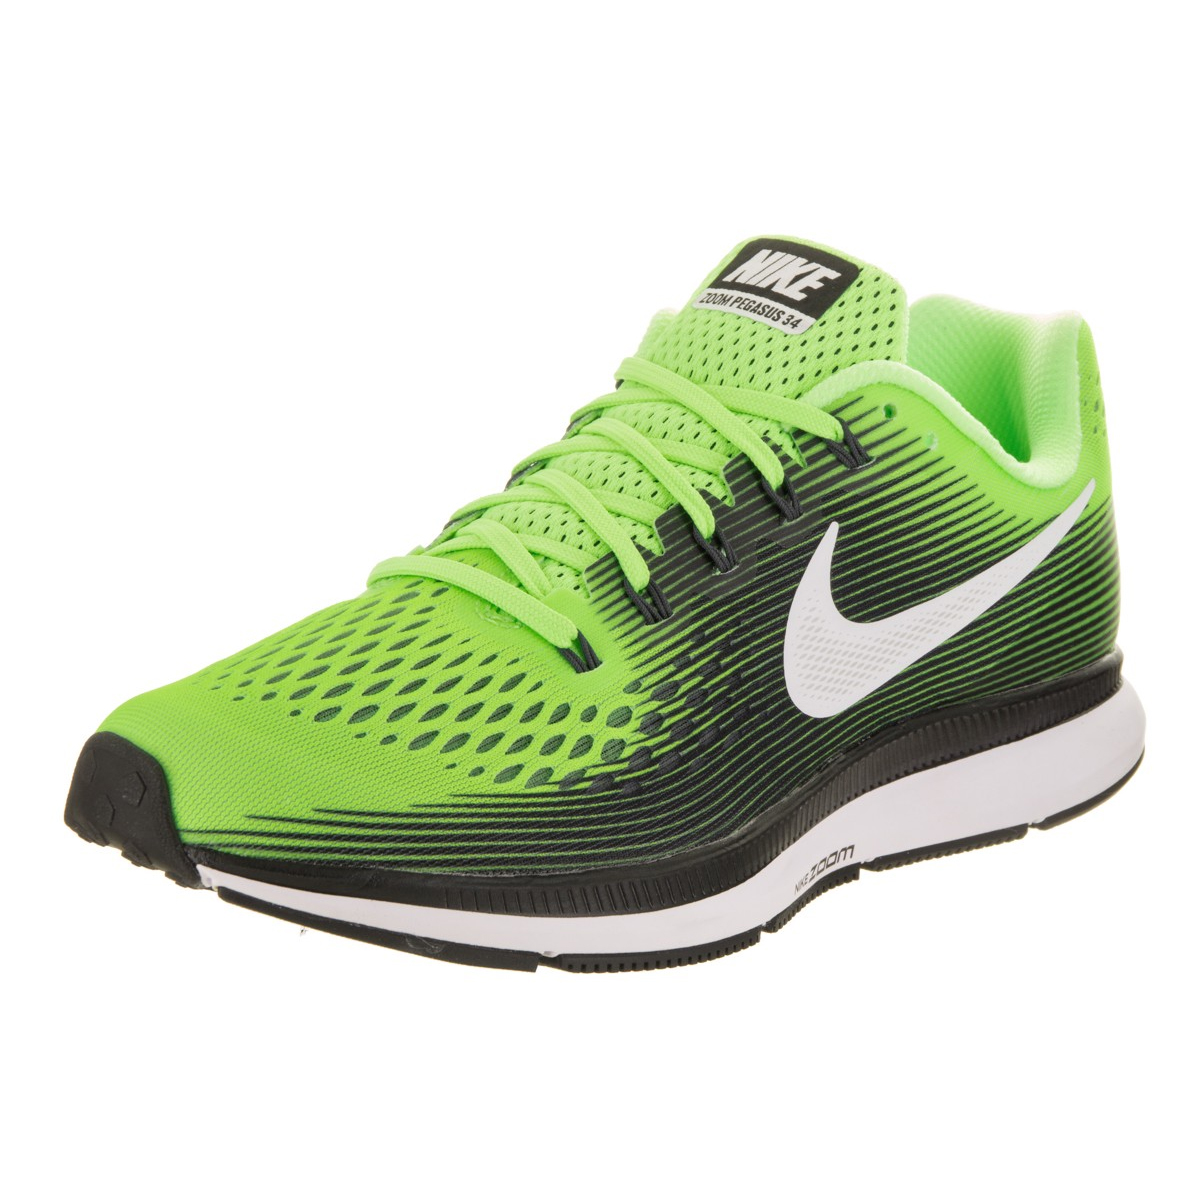 nike air zoom pegasus 34 running shoes sport shoes running shoes. Black Bedroom Furniture Sets. Home Design Ideas